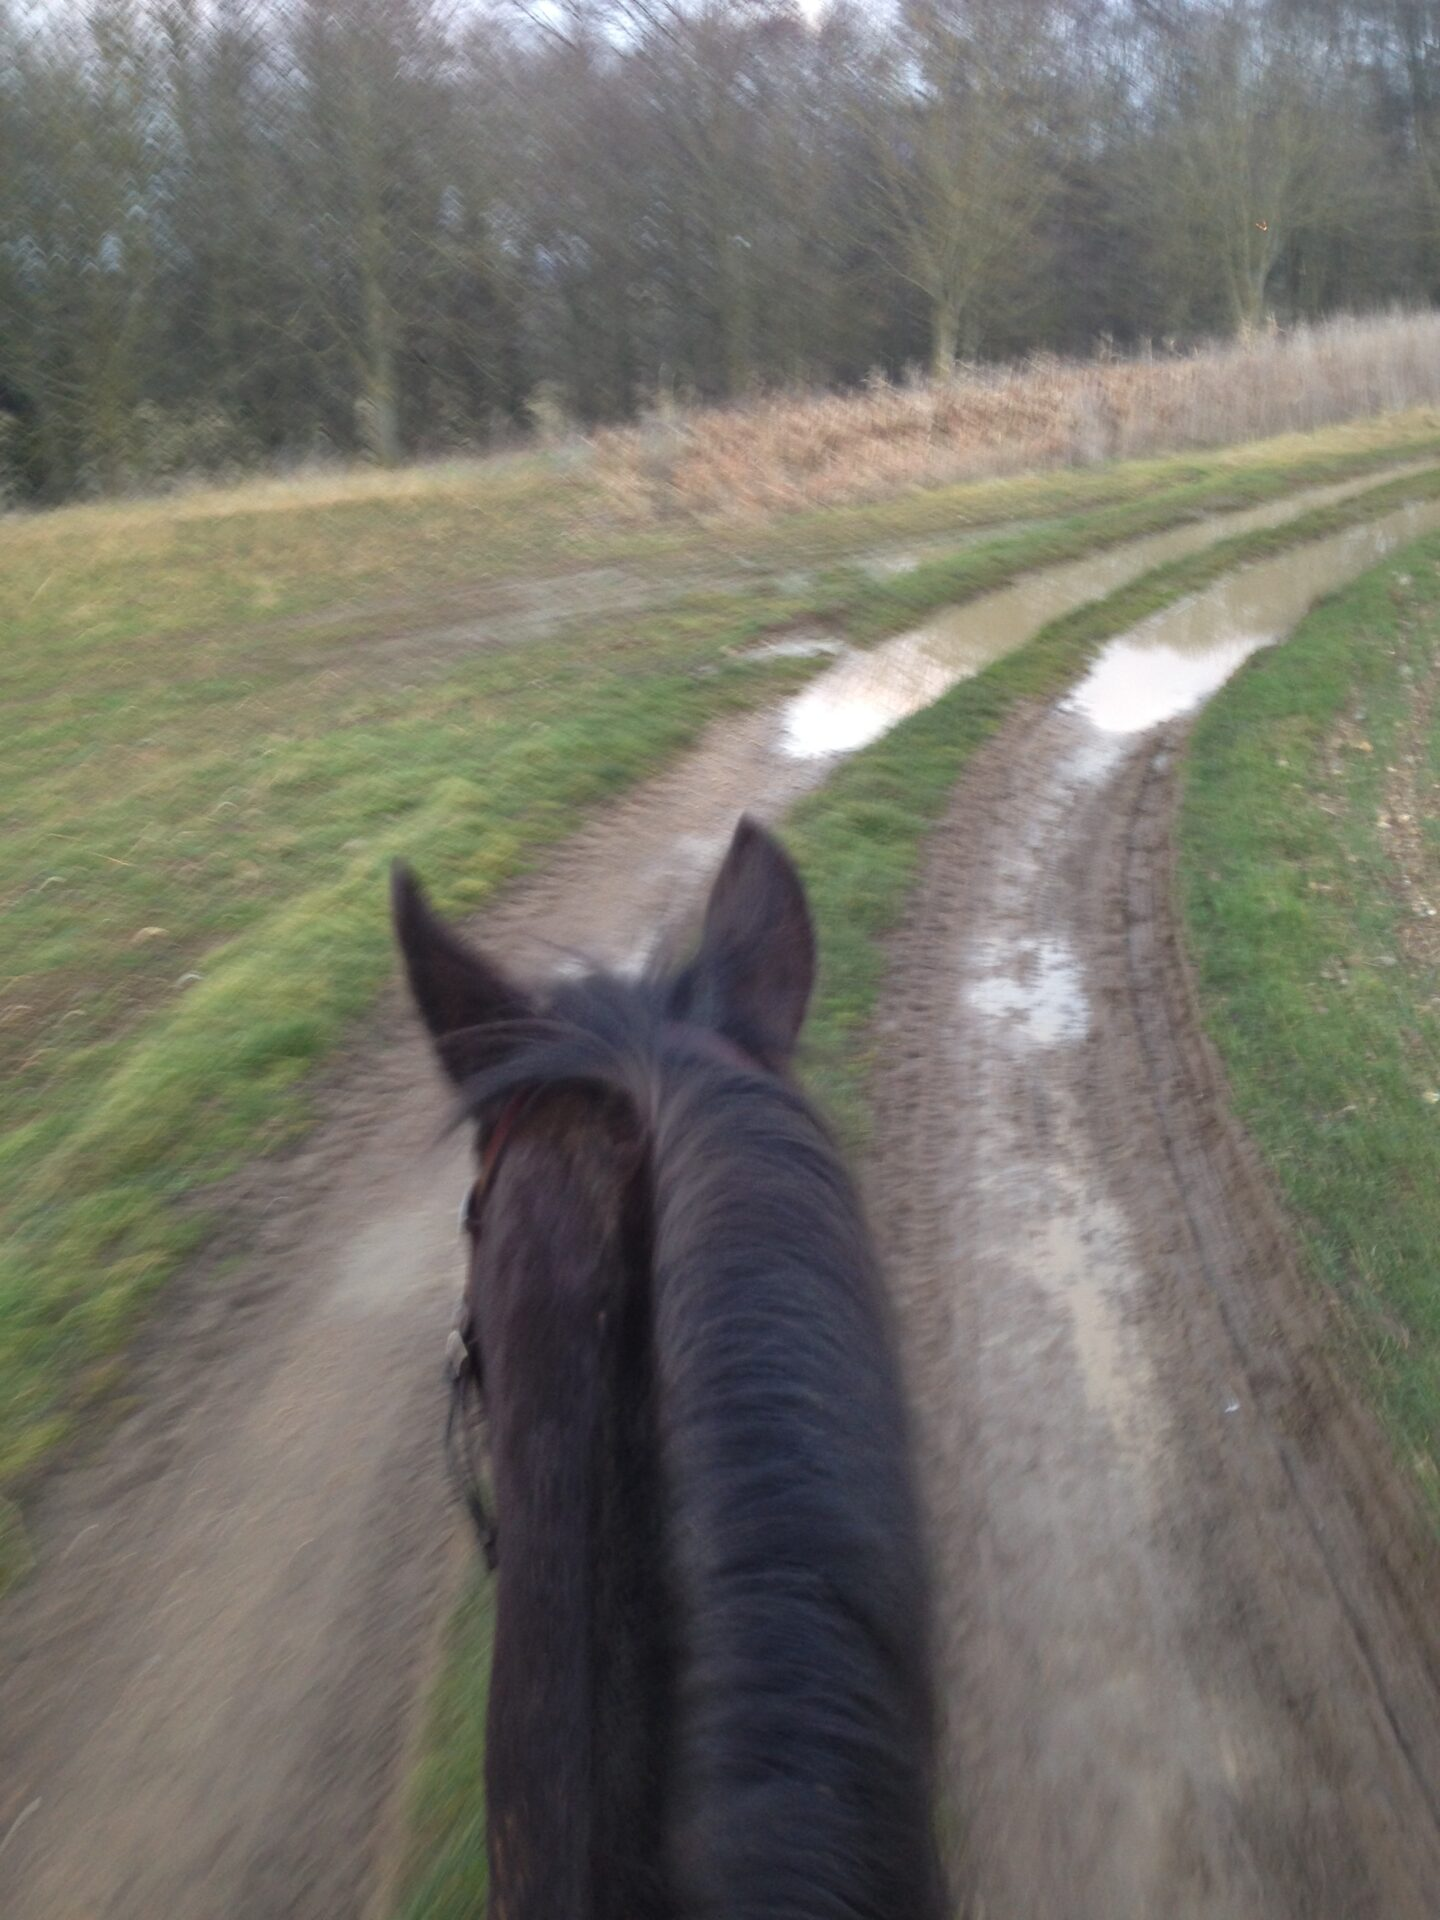 An early spring hack and a slice of sanity